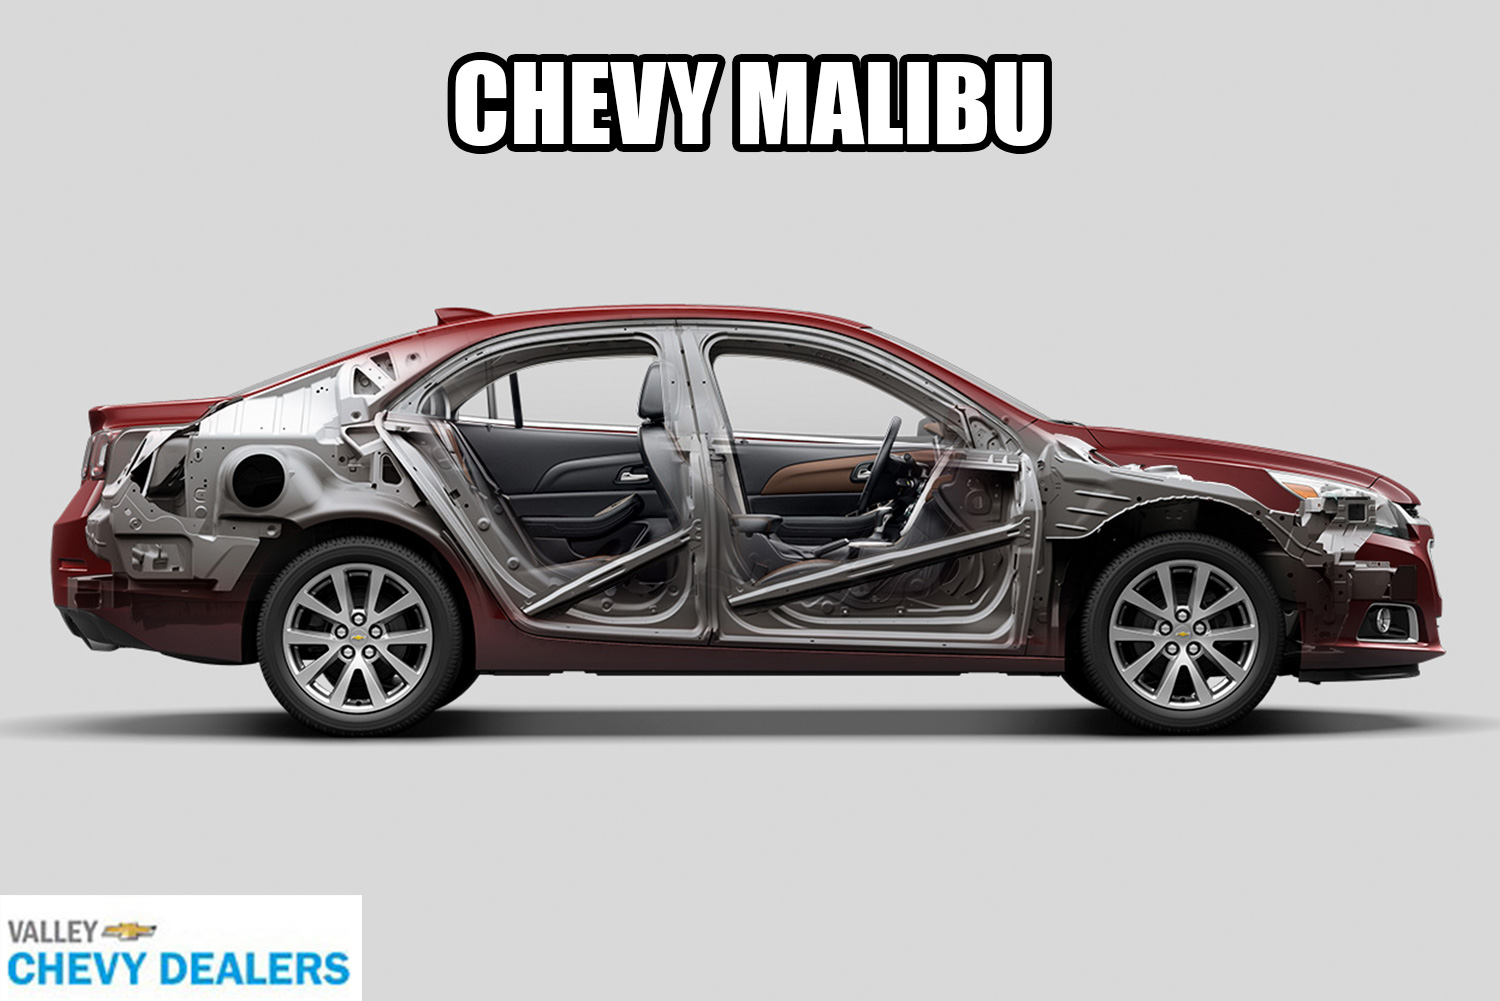 Valley Chevy in Phoenix: 2017 Chevrolet Malibu vs Impala - Which One Should I Buy? - Malibu Safety Airbags